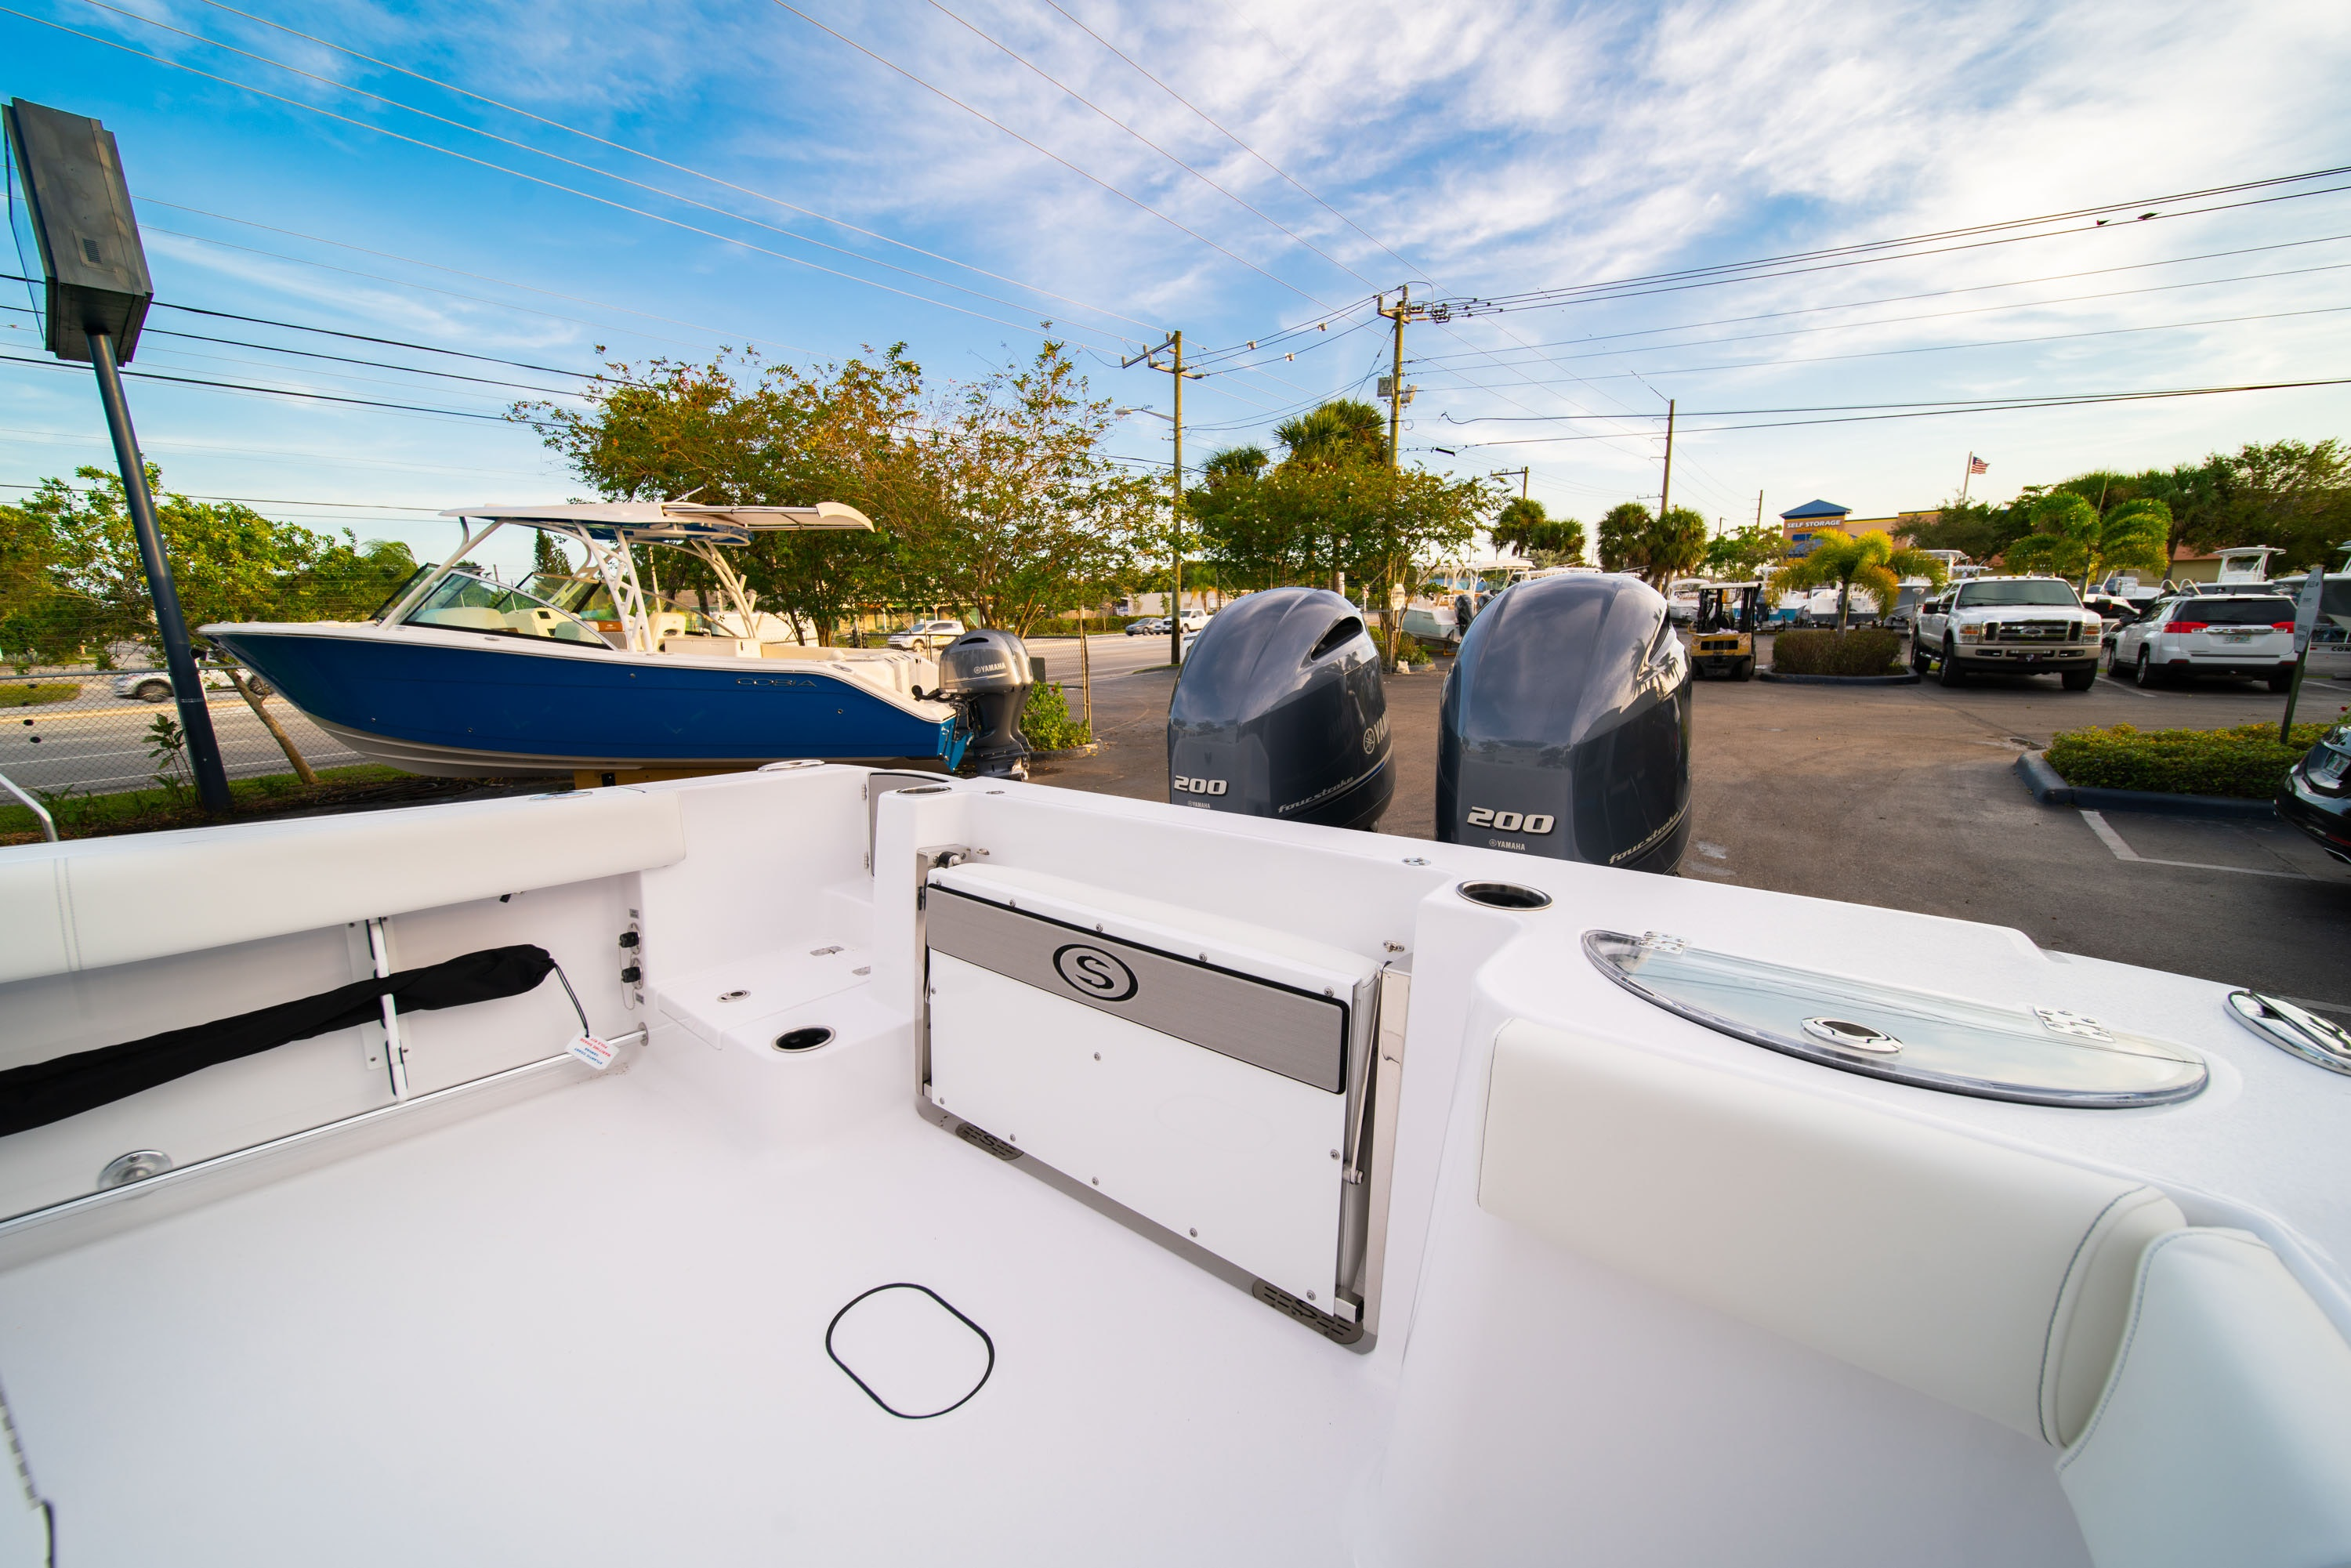 Thumbnail 13 for New 2020 Sportsman Open 282 Center Console boat for sale in West Palm Beach, FL